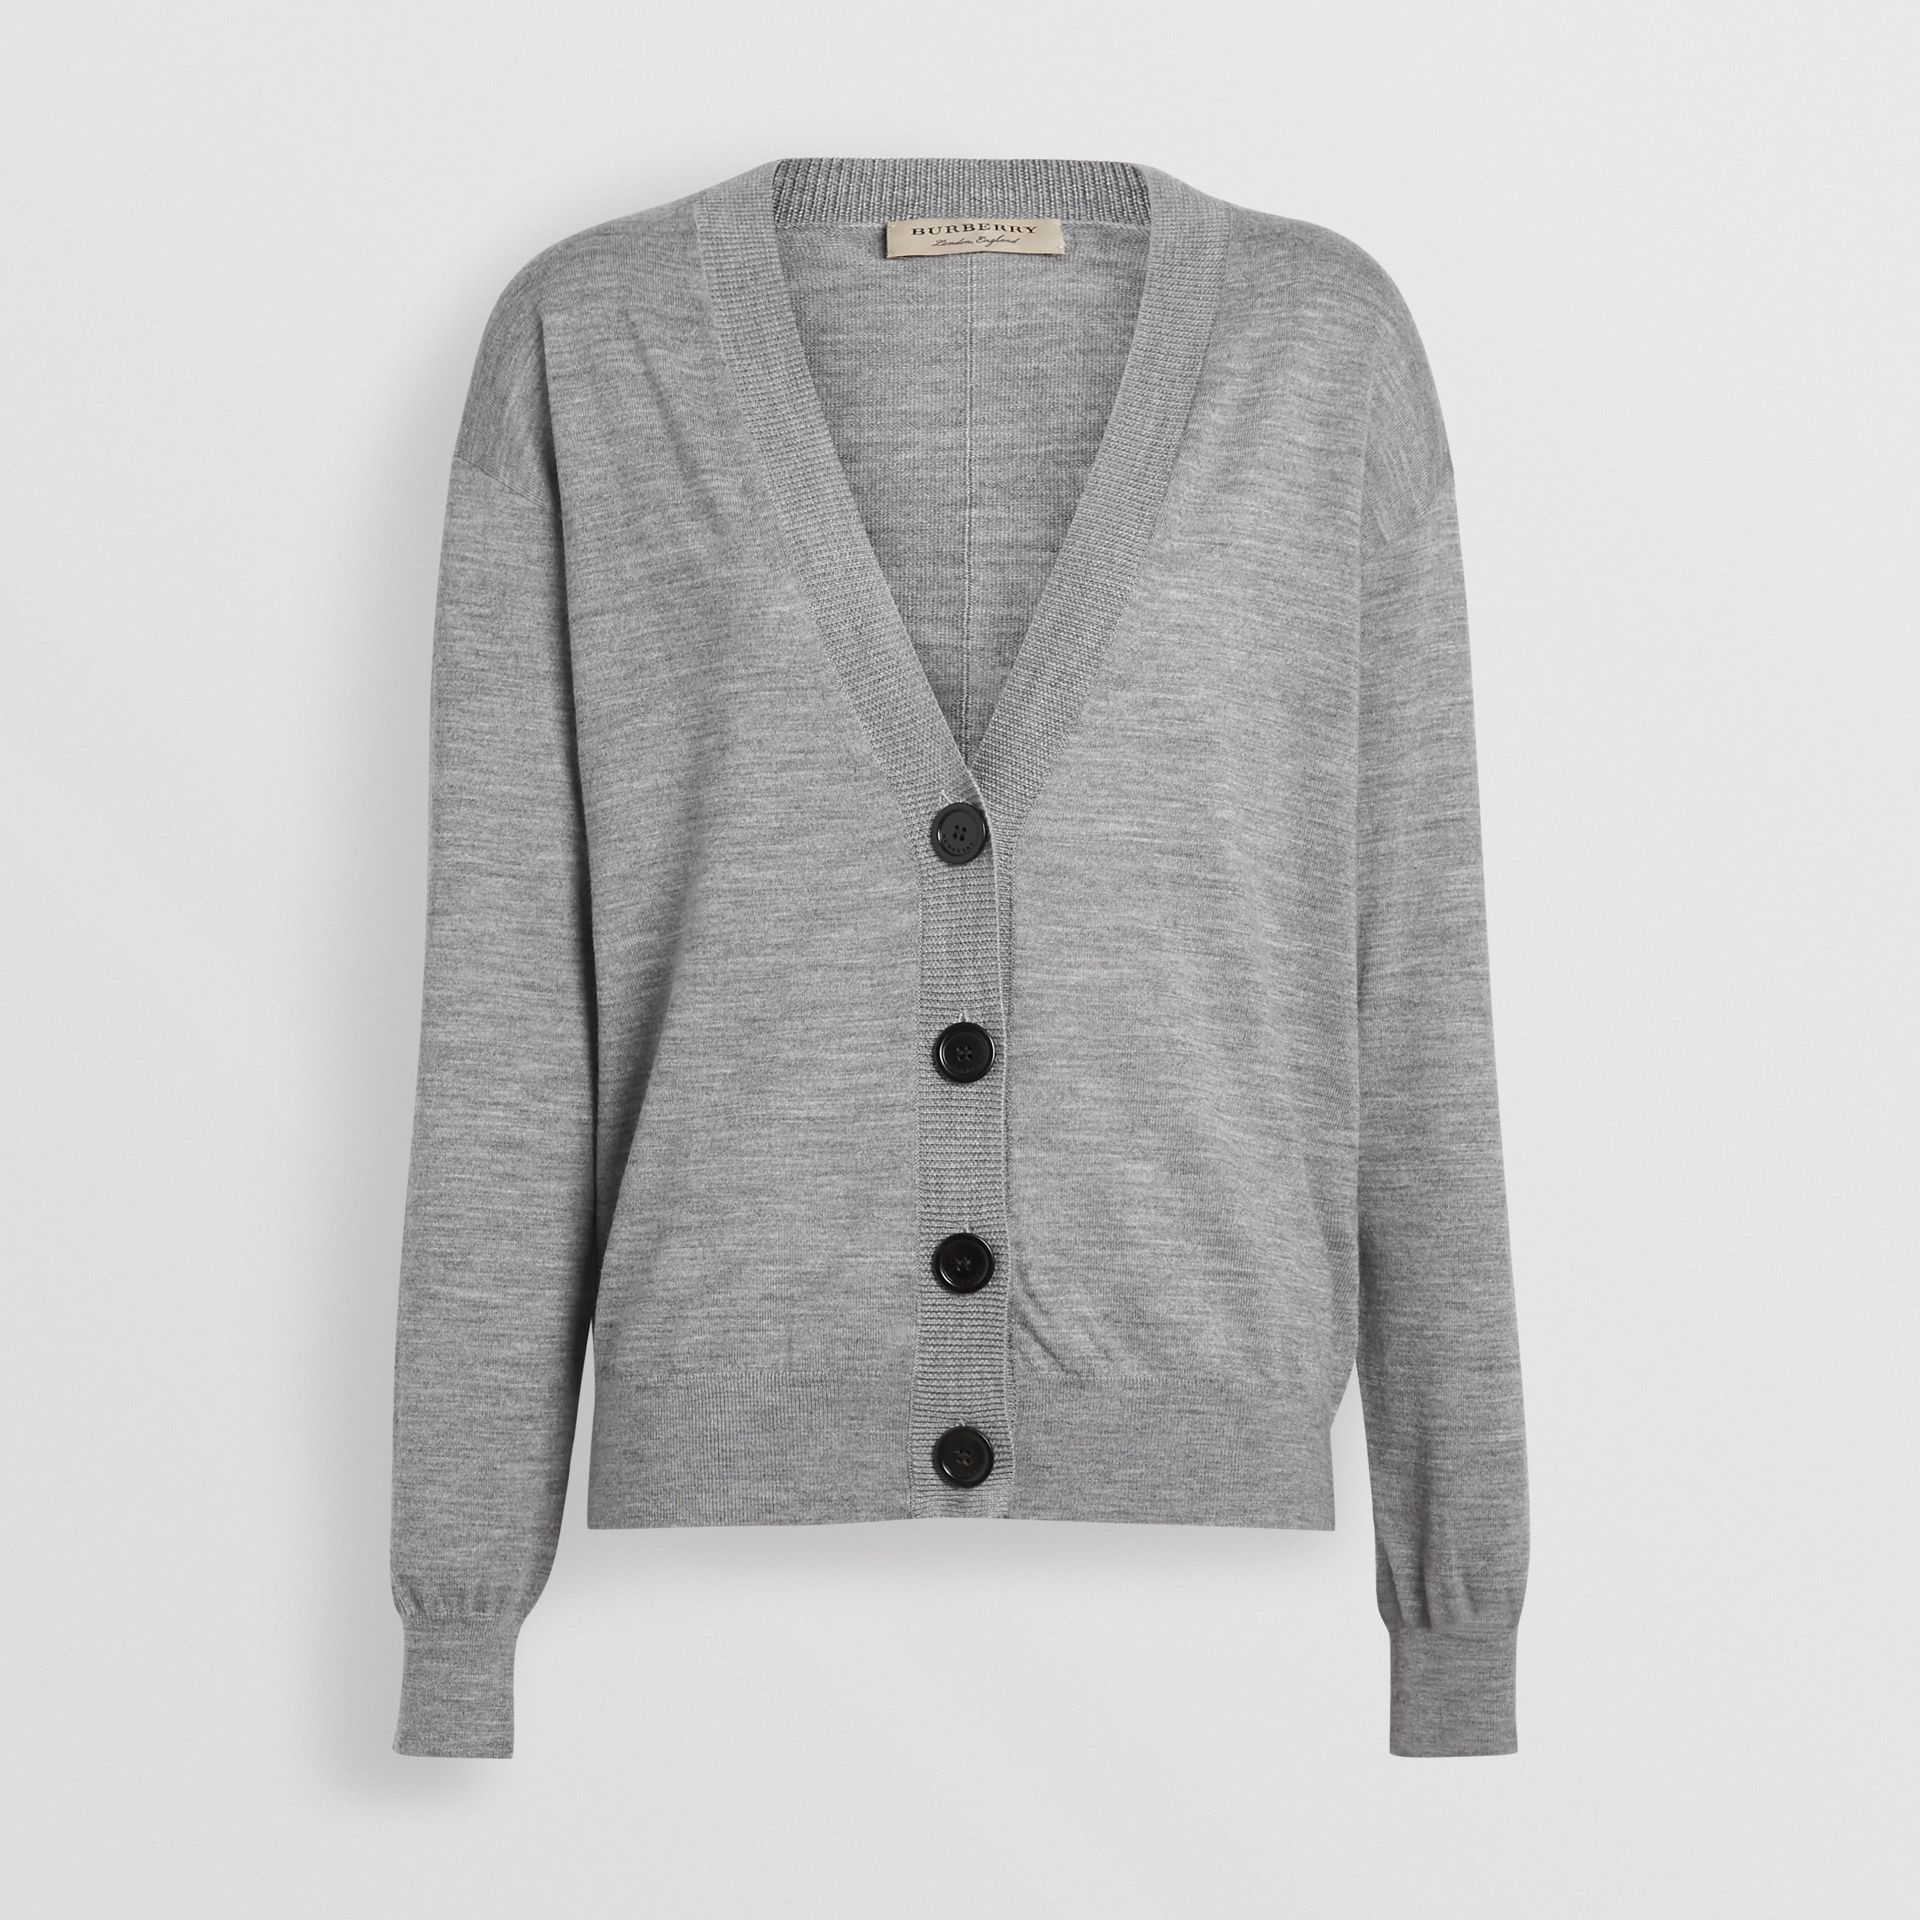 Vintage Check Detail Merino Wool Cardigan in Grey Melange - Women | Burberry Australia - gallery image 3